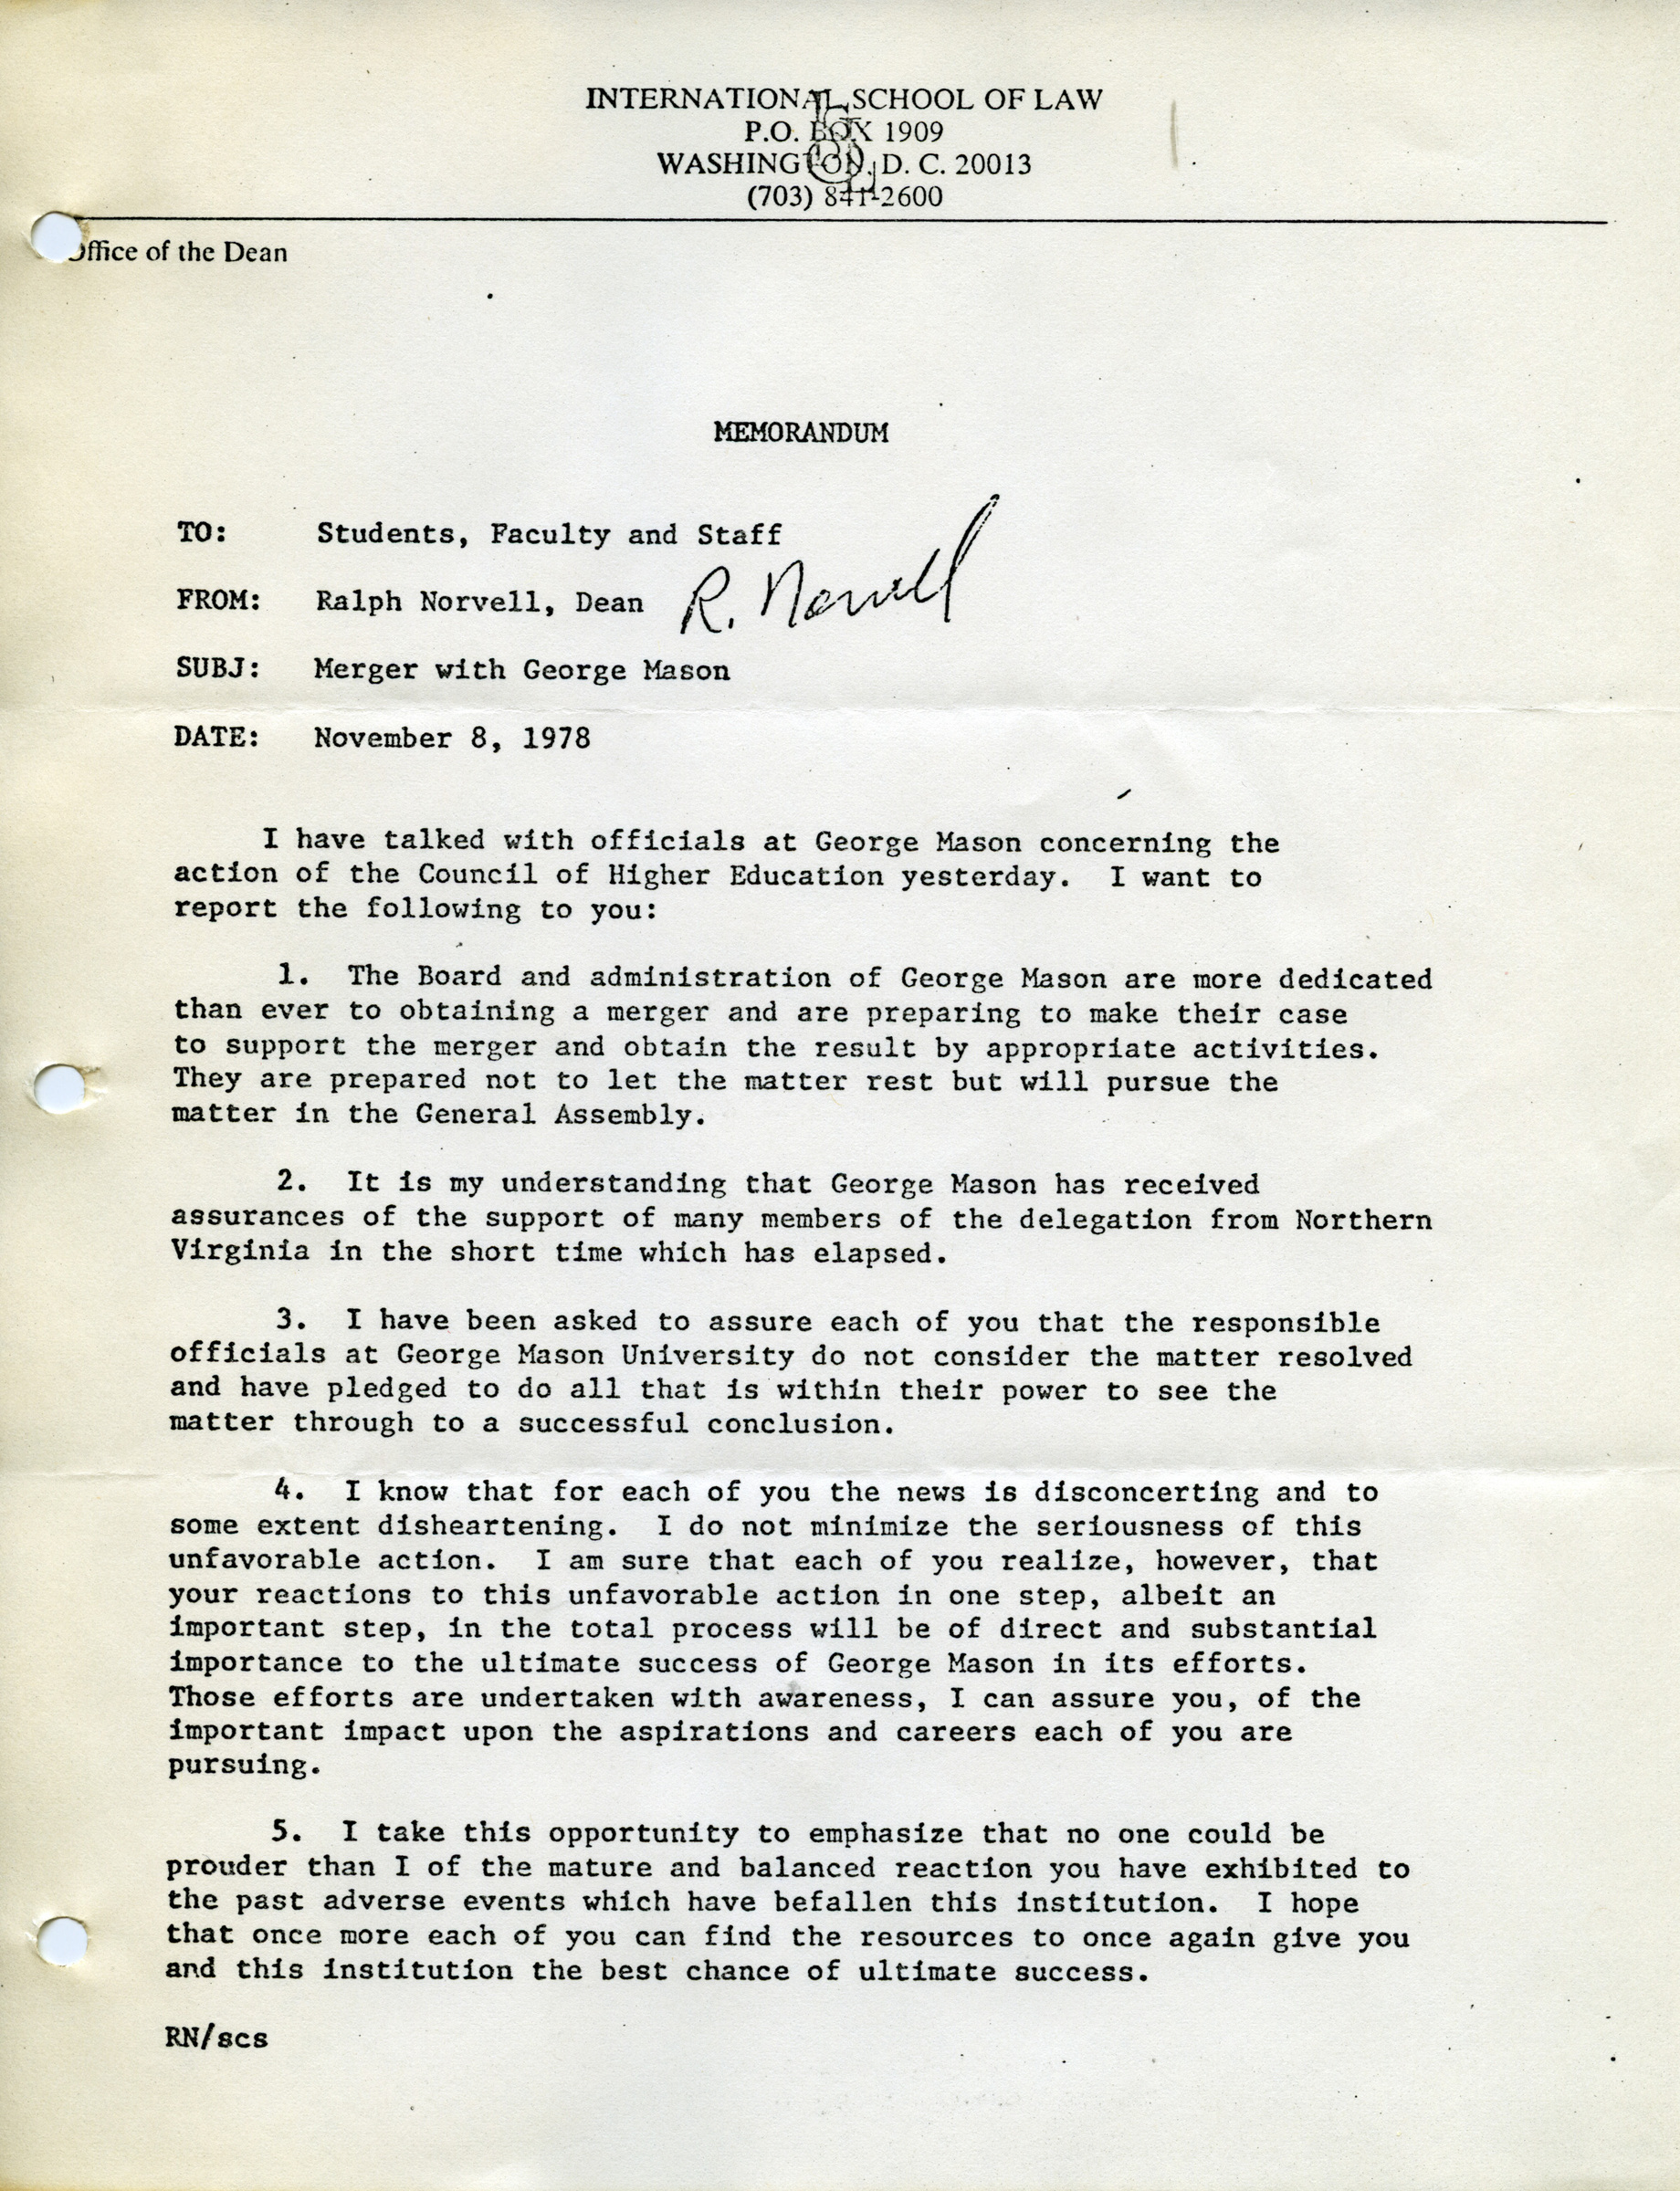 daniel_smith_norvell_to_students_faculty_staff_11_8_1978.jpg